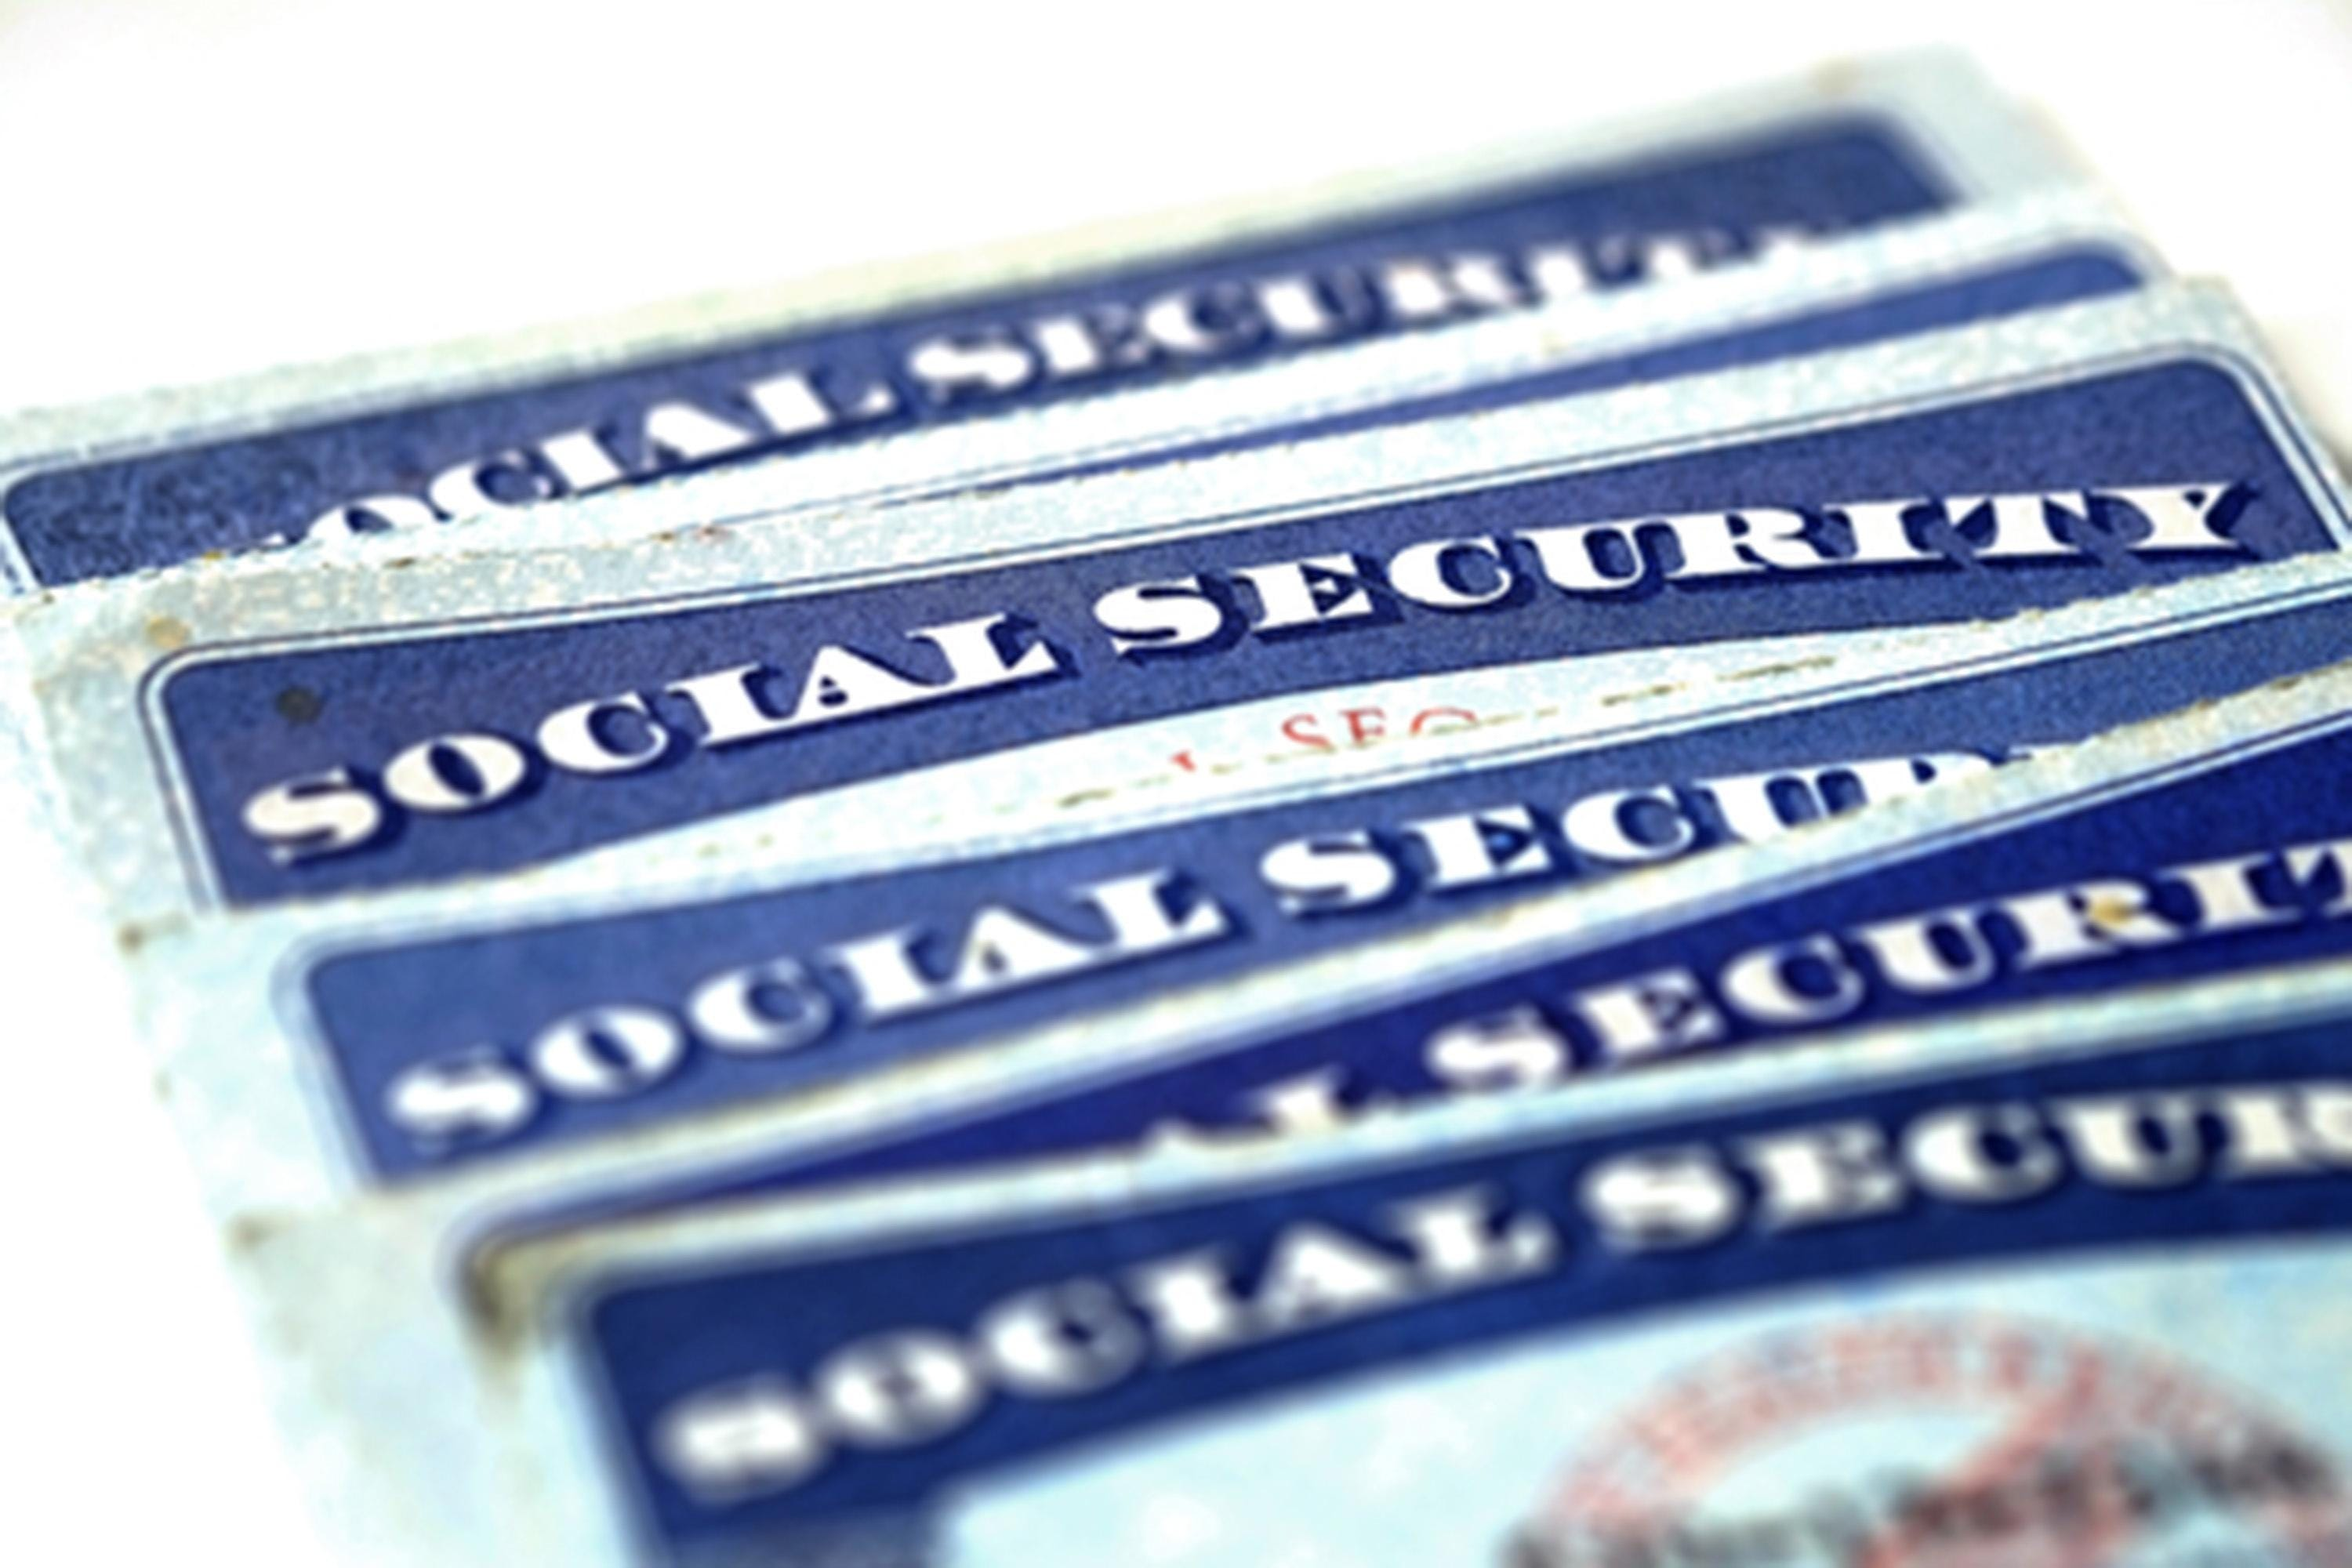 Detroit man, 76, gets six months for Social Security fraud